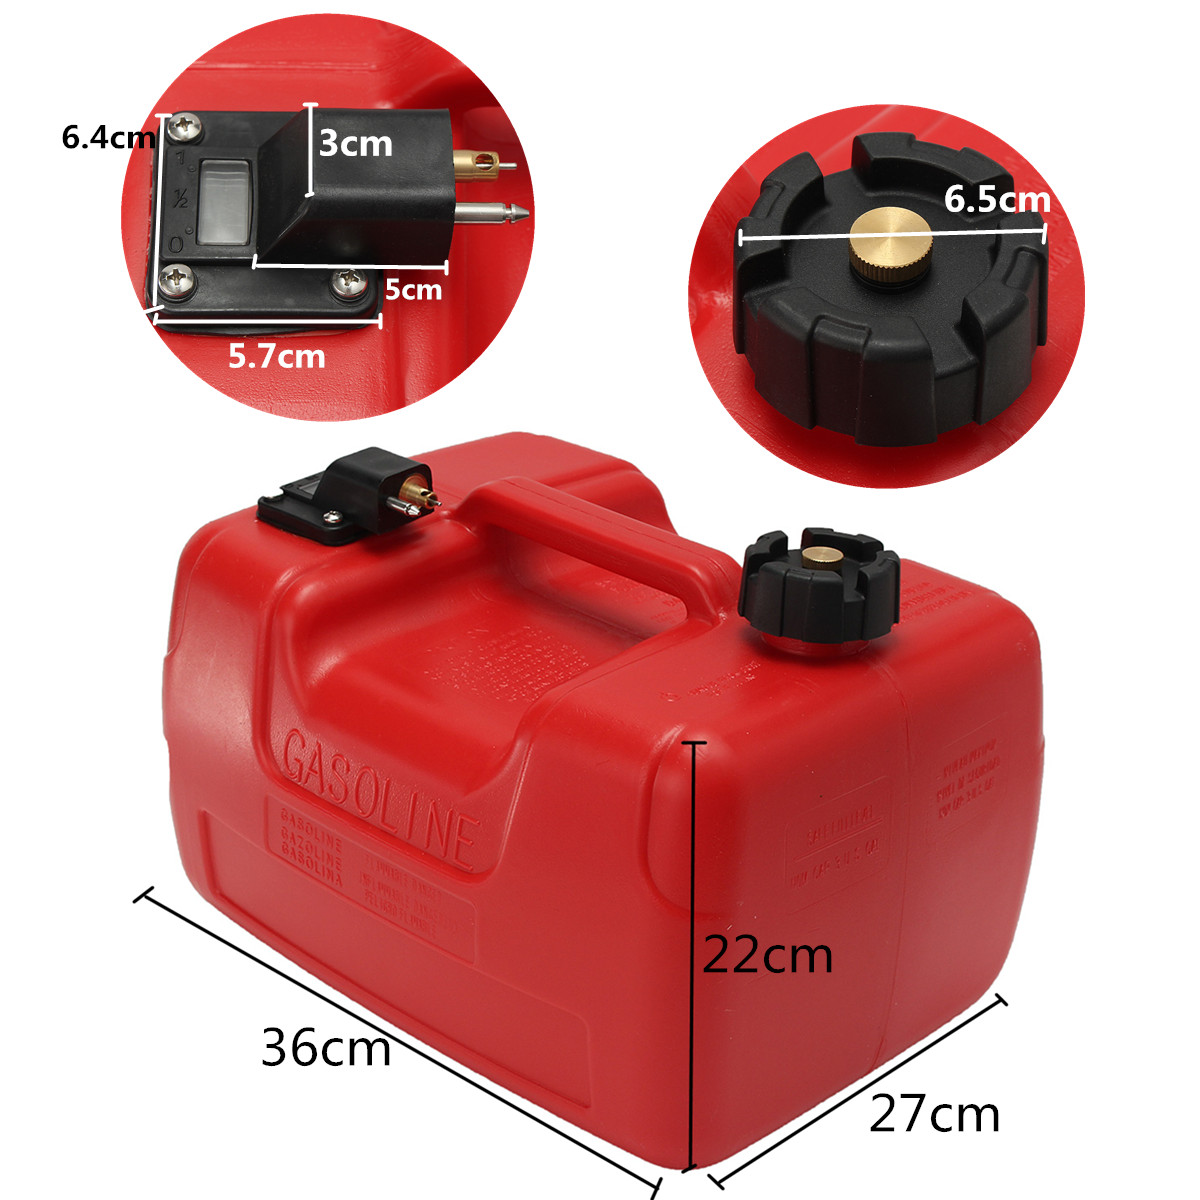 US $44 2 46% OFF|12L Portable Boat Yacht Engine Marine Outboard Fuel Tank  Oil Box With Connector Red Plastic Corrosion resistant Anti static-in Fuel